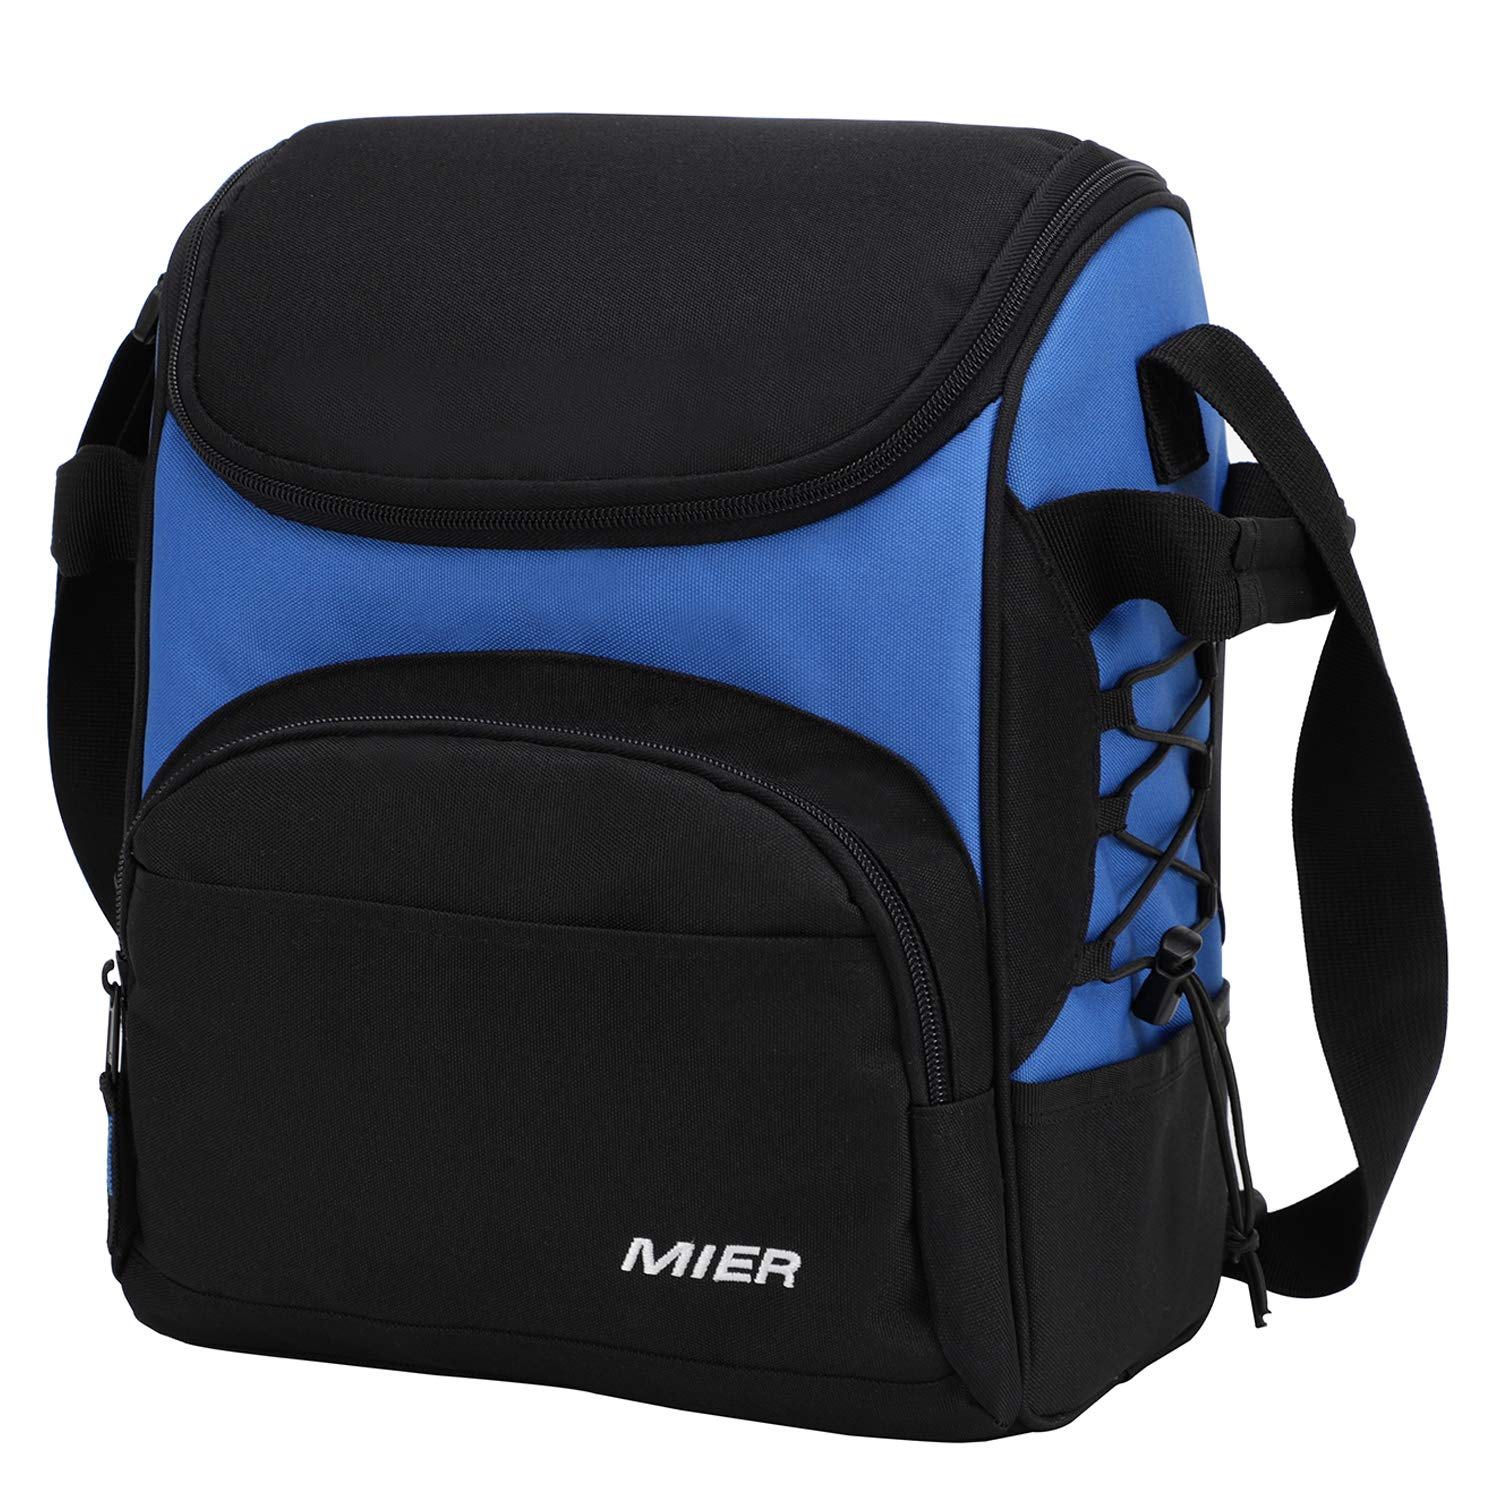 MIER 16 Can Insulated Lunch Box Bag For Women Men Large Leakproof Soft Cooler